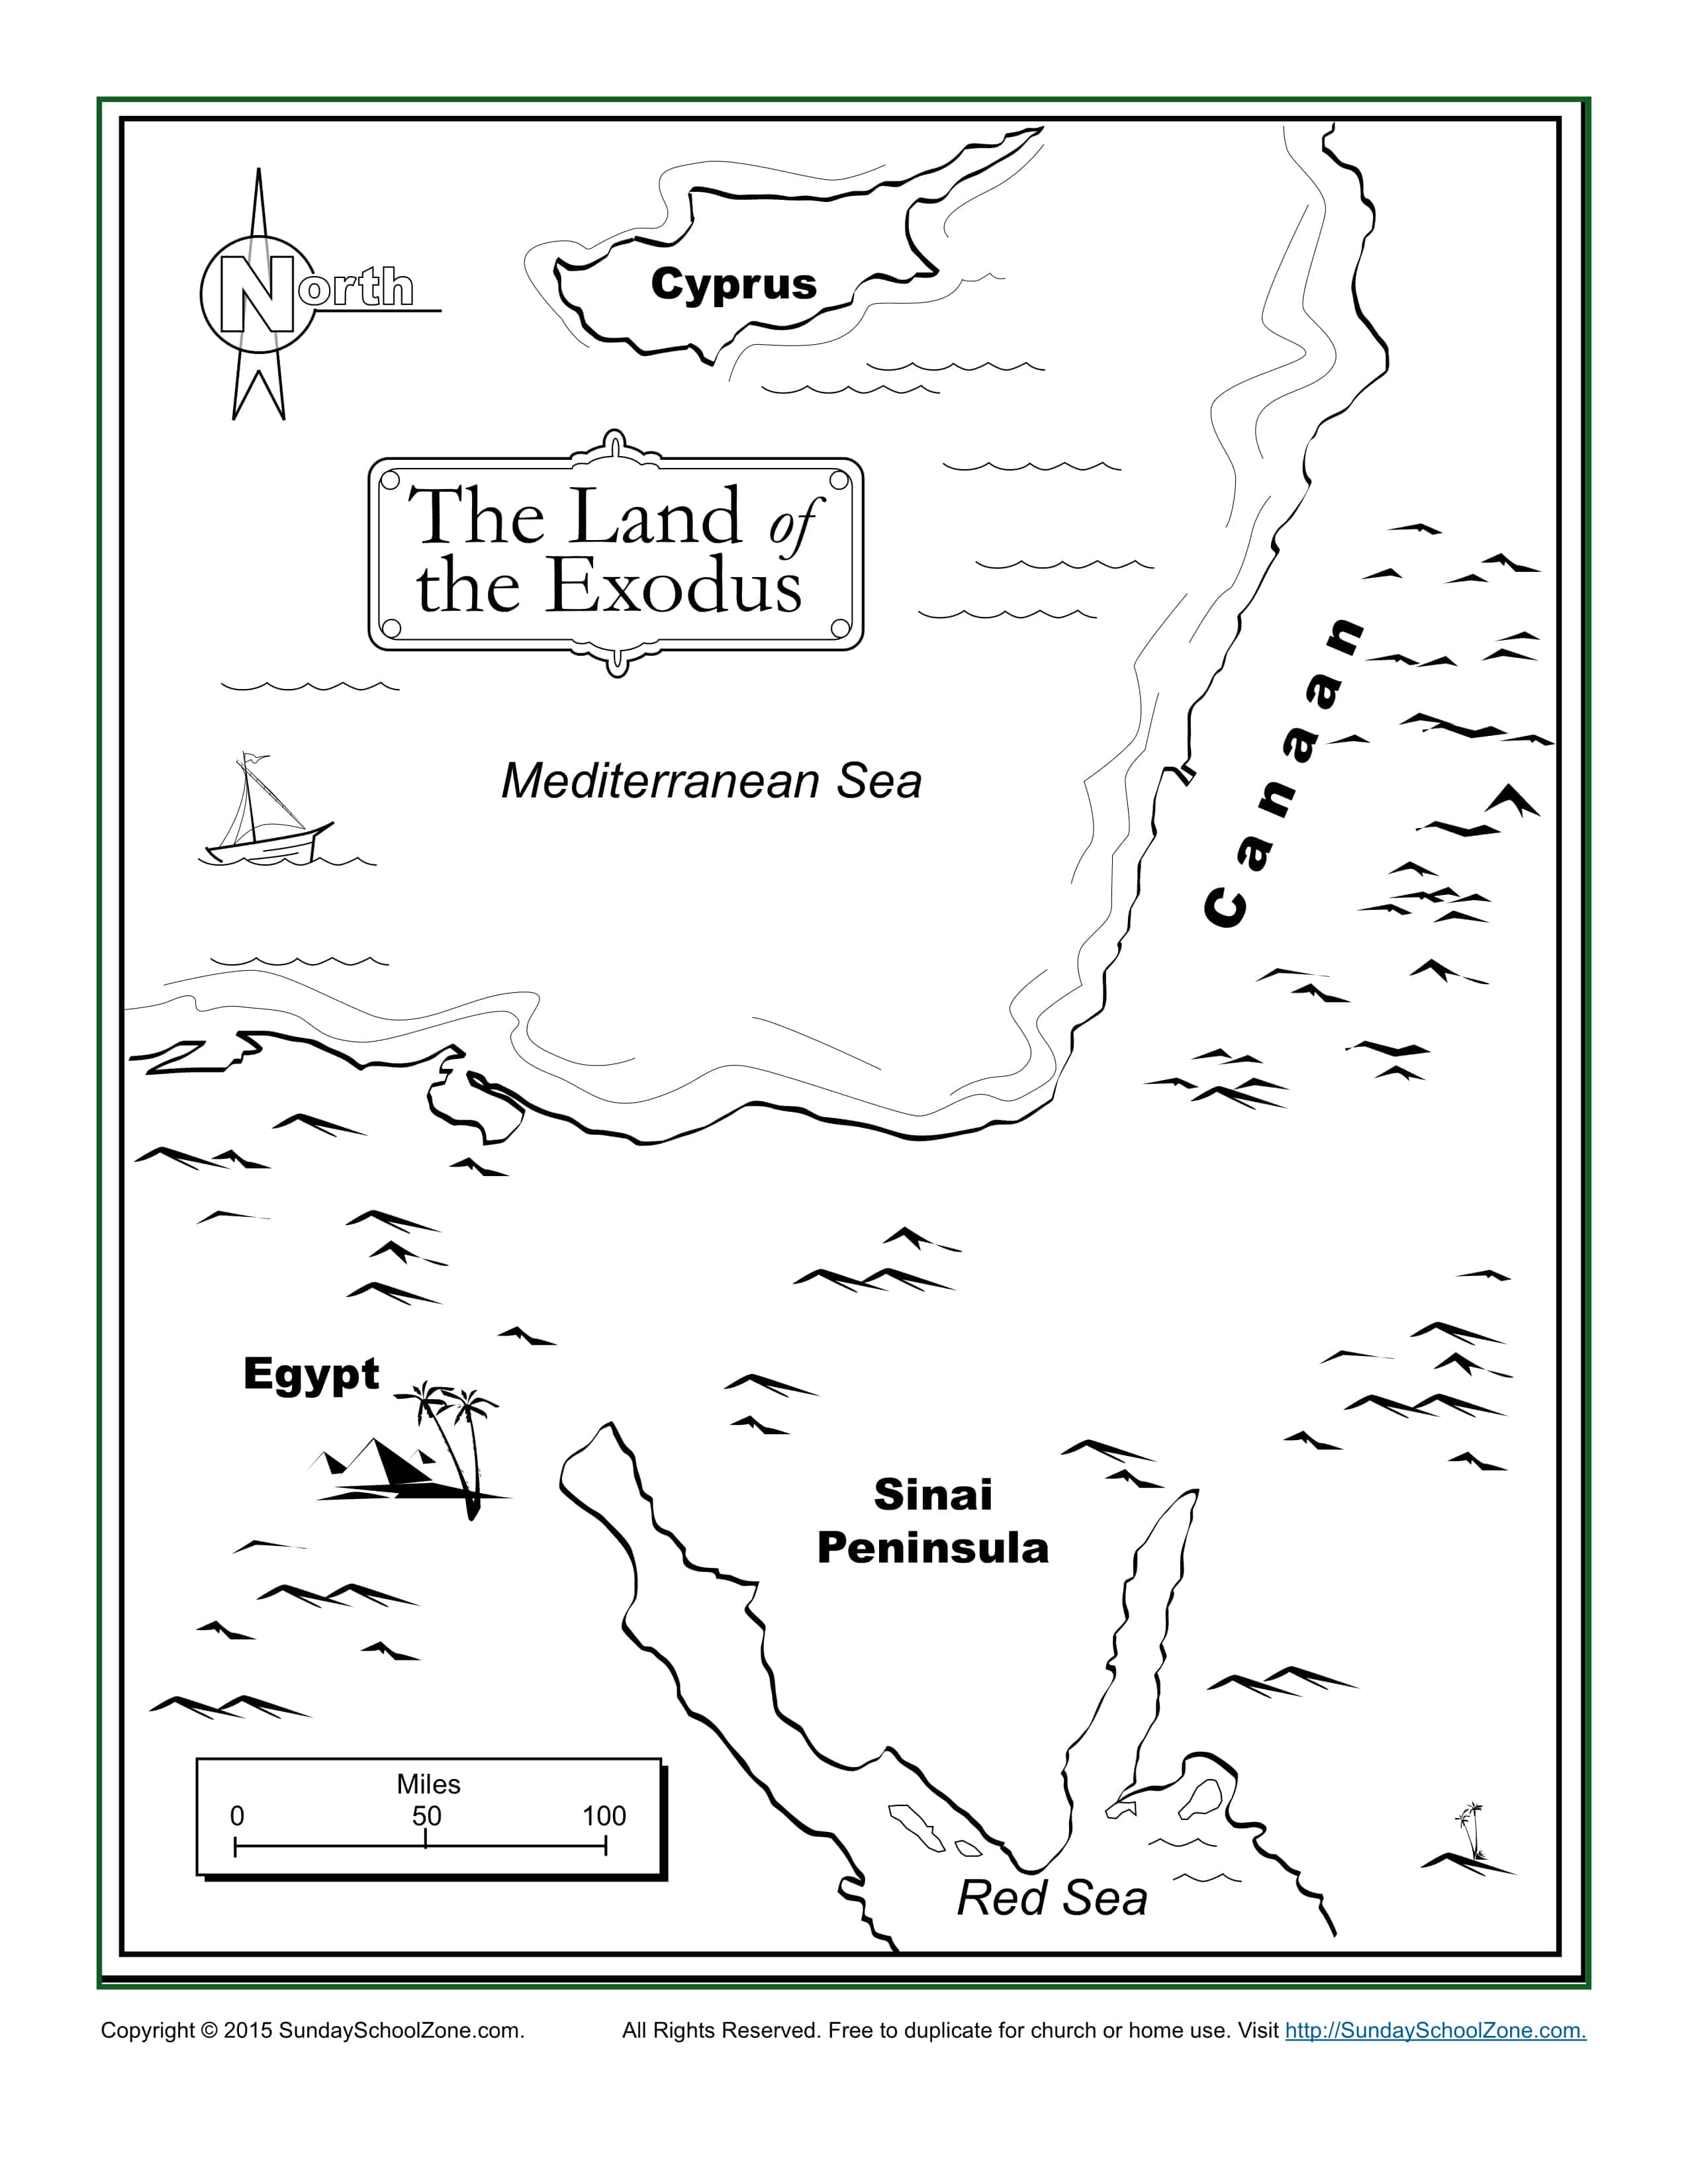 The Land of the Exodus Bible Map